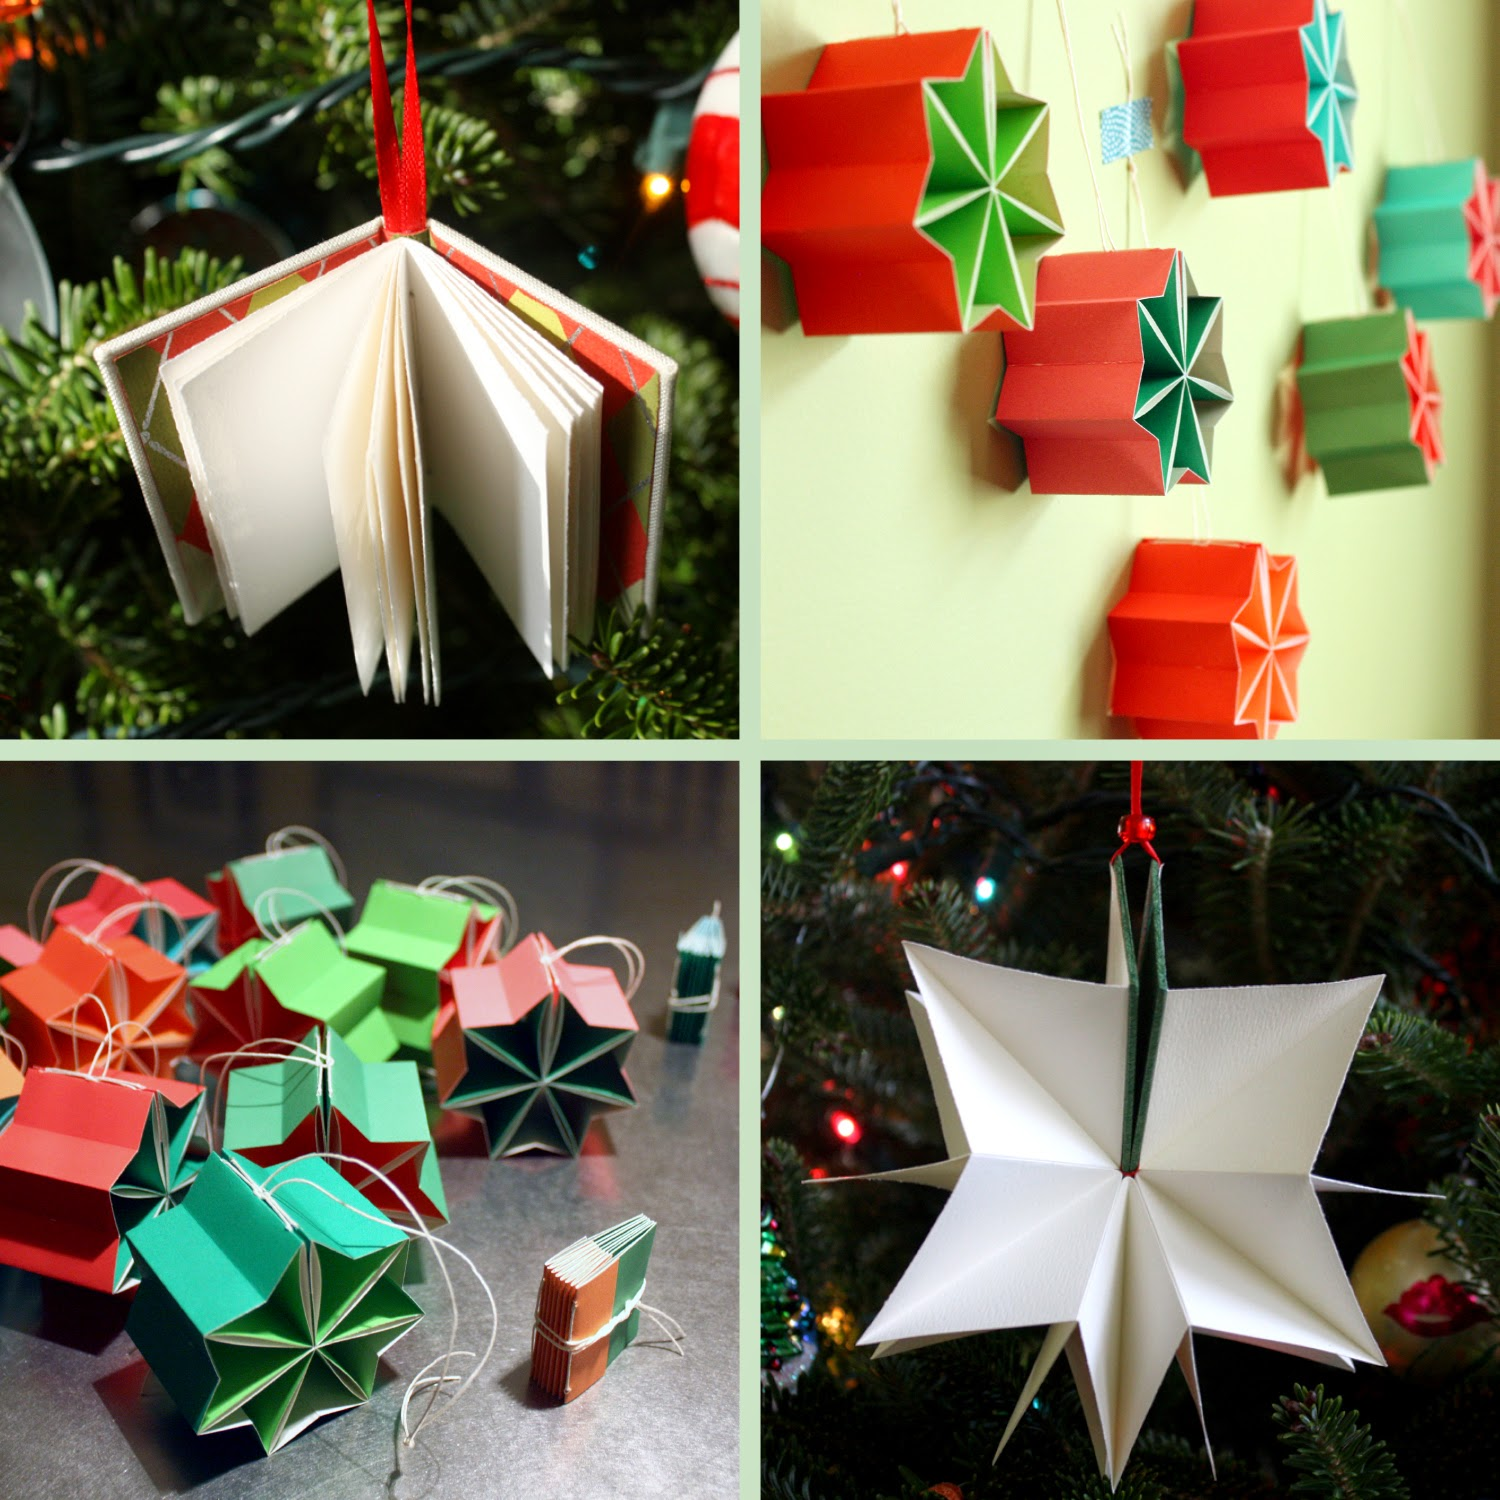 Hanmade book Christmas ornaments by linenlaidfelt in Nashville